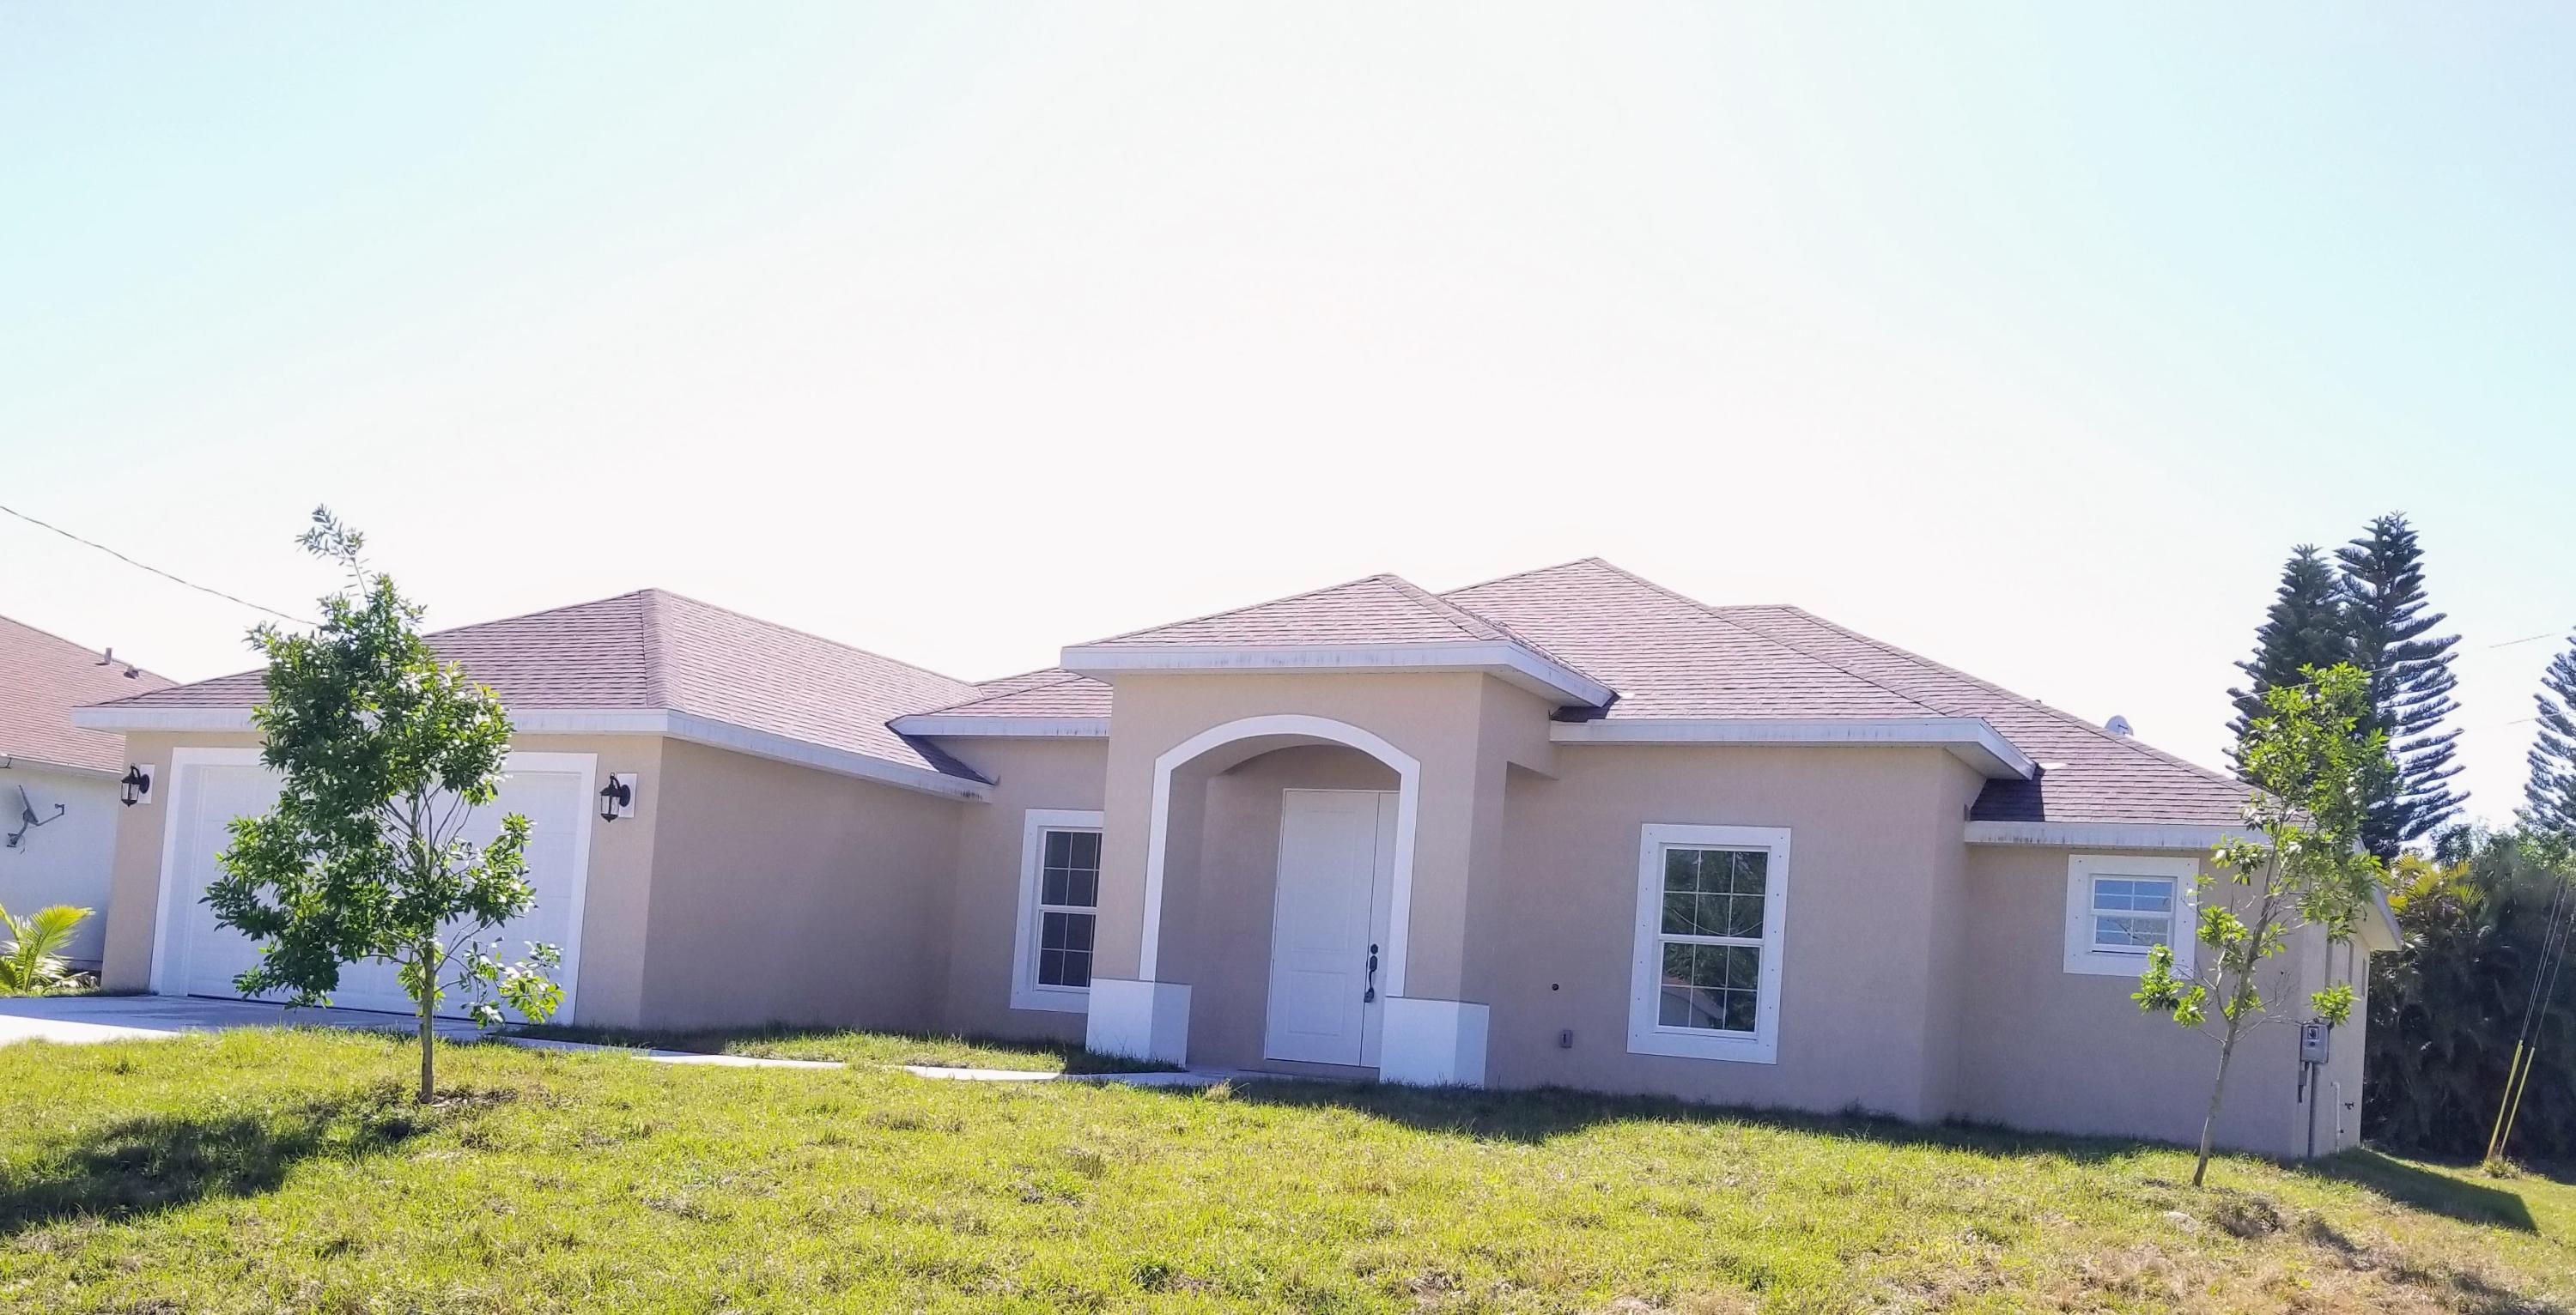 468 SE Nome Drive 34984 - One of Port Saint Lucie Homes for Sale